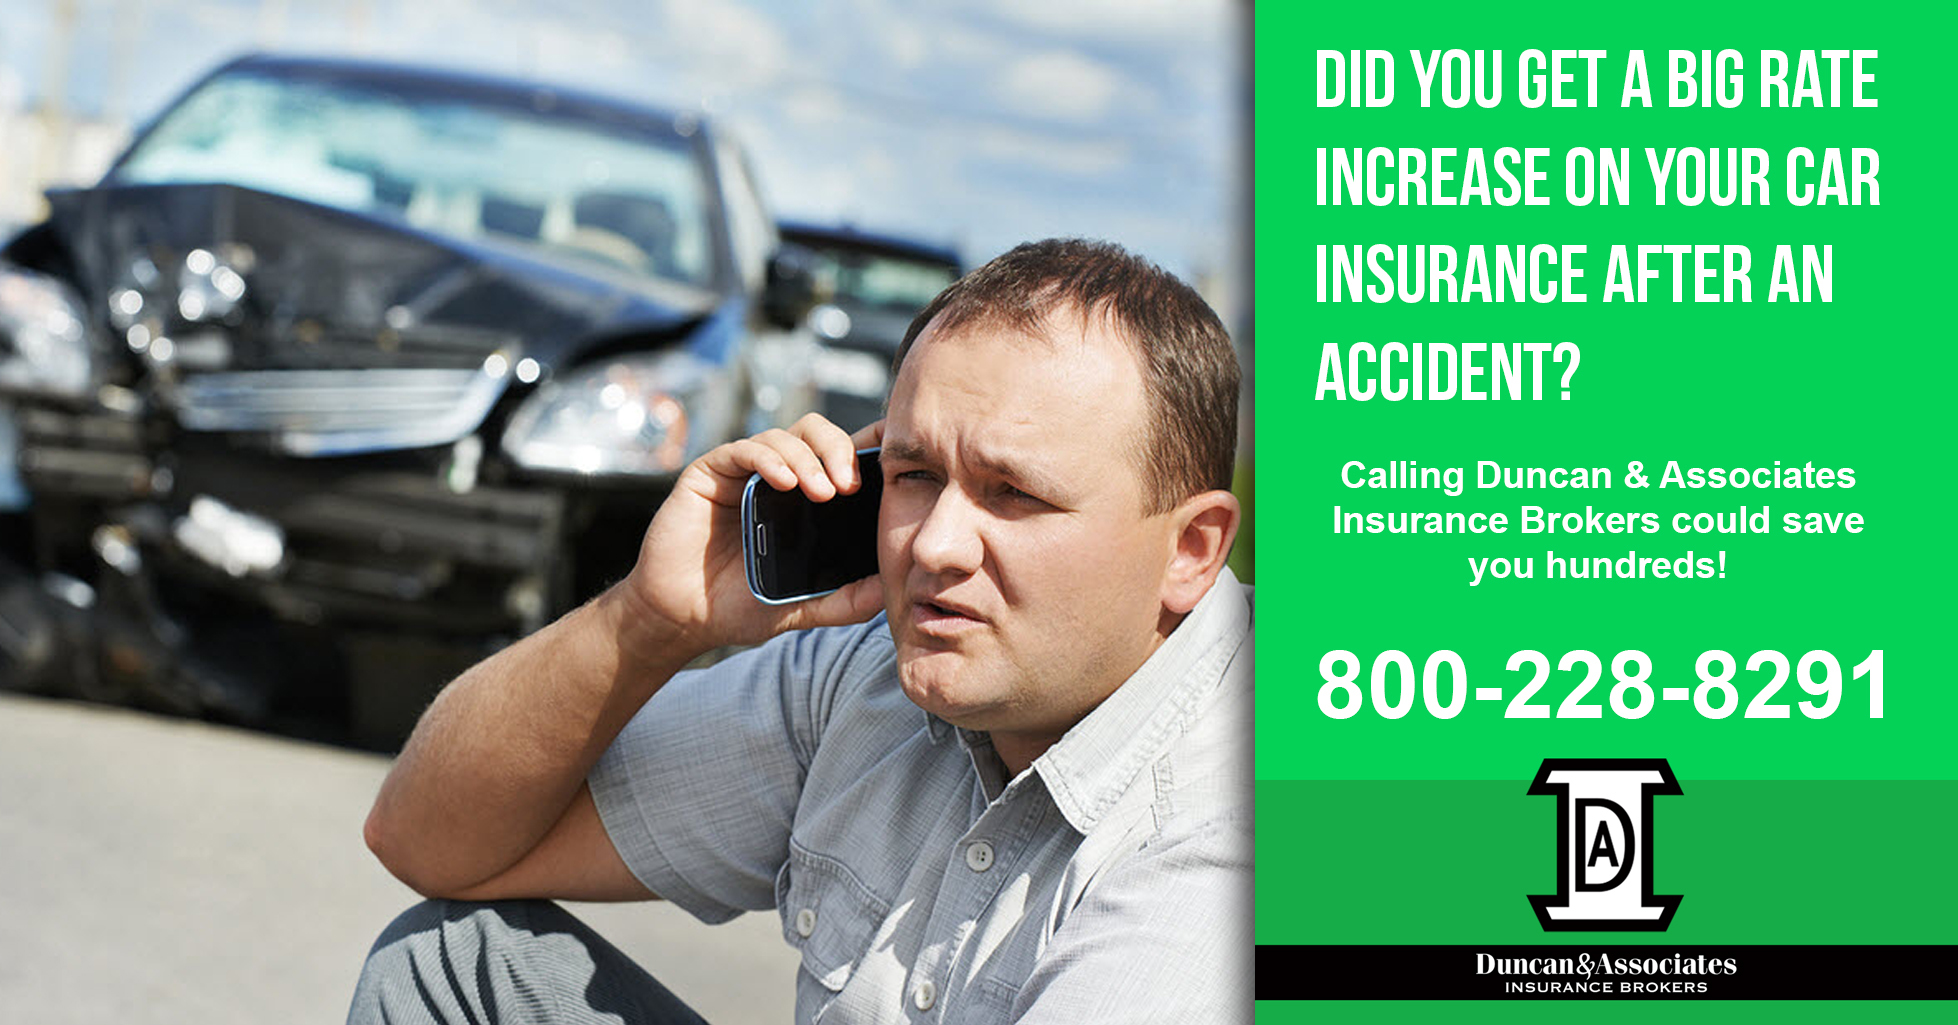 Have you been in an accident recently did you see a big rate hike on your olympia auto insurance if so then call us today or visit www duncanins